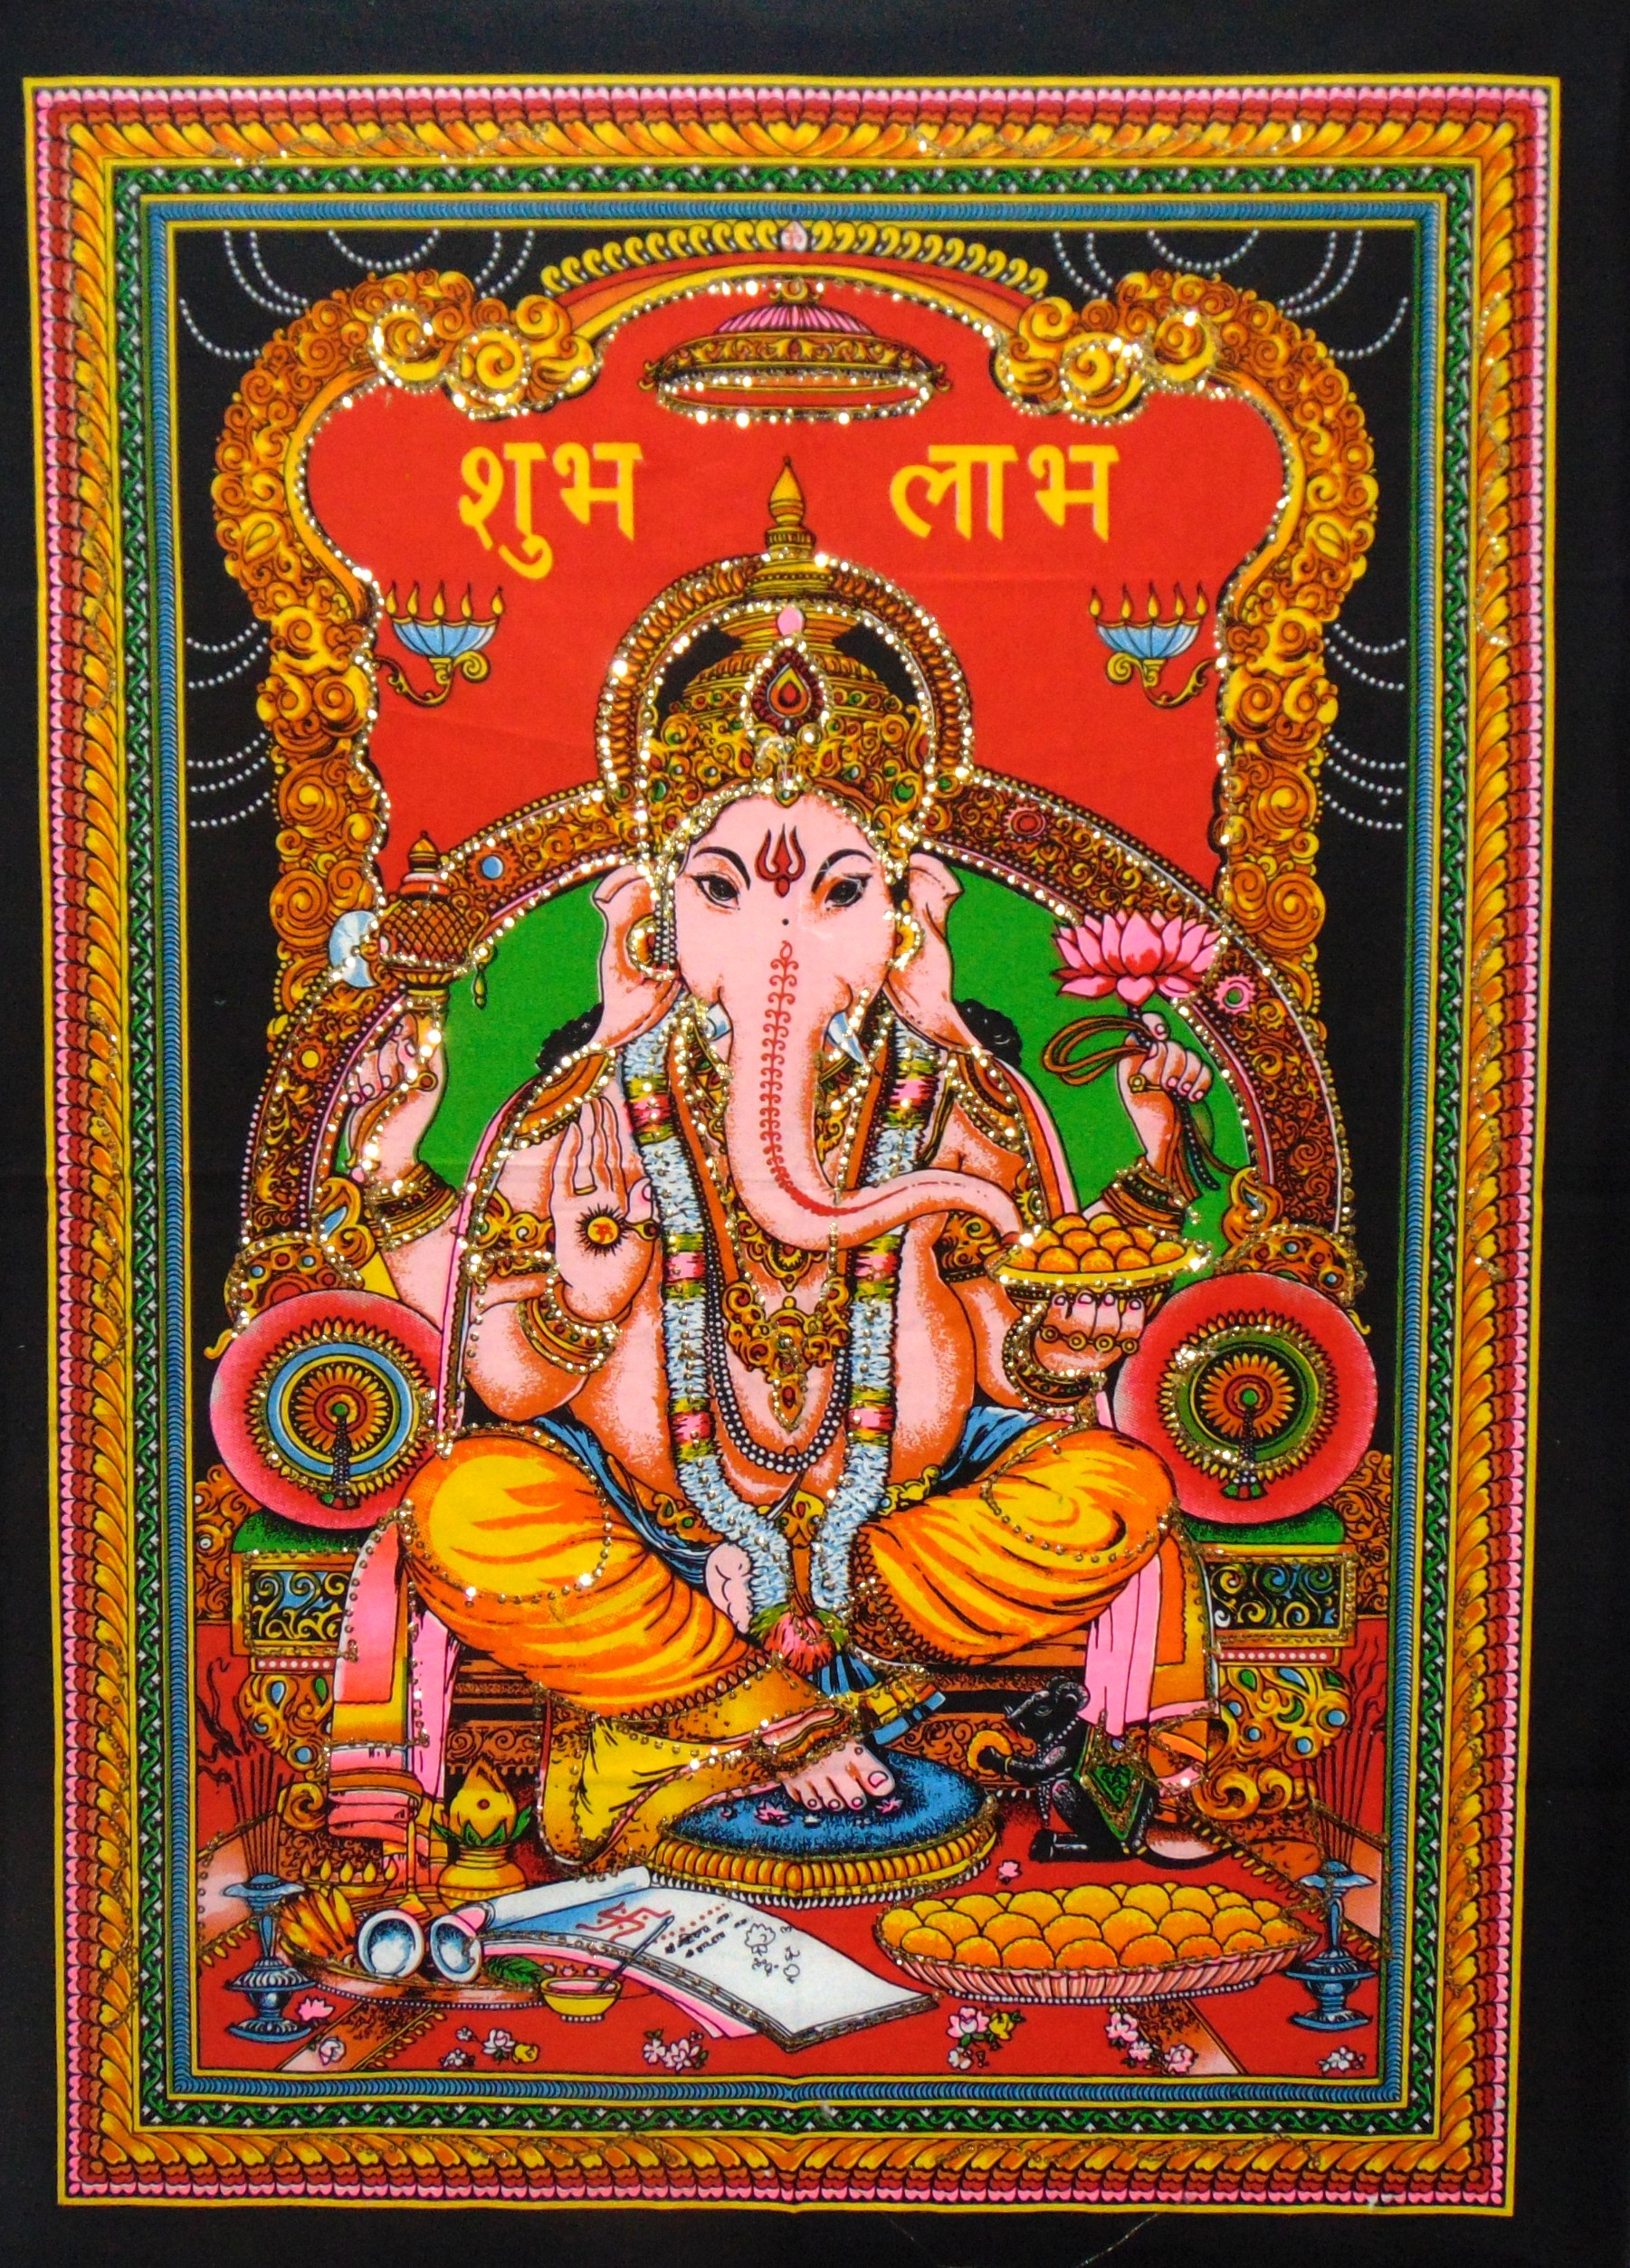 Heyrumbh Handicrafts Lord Ganesha Wall Hanging Tapestry Poster(Brush Paint Multi Color, 40 X 30 Inches)